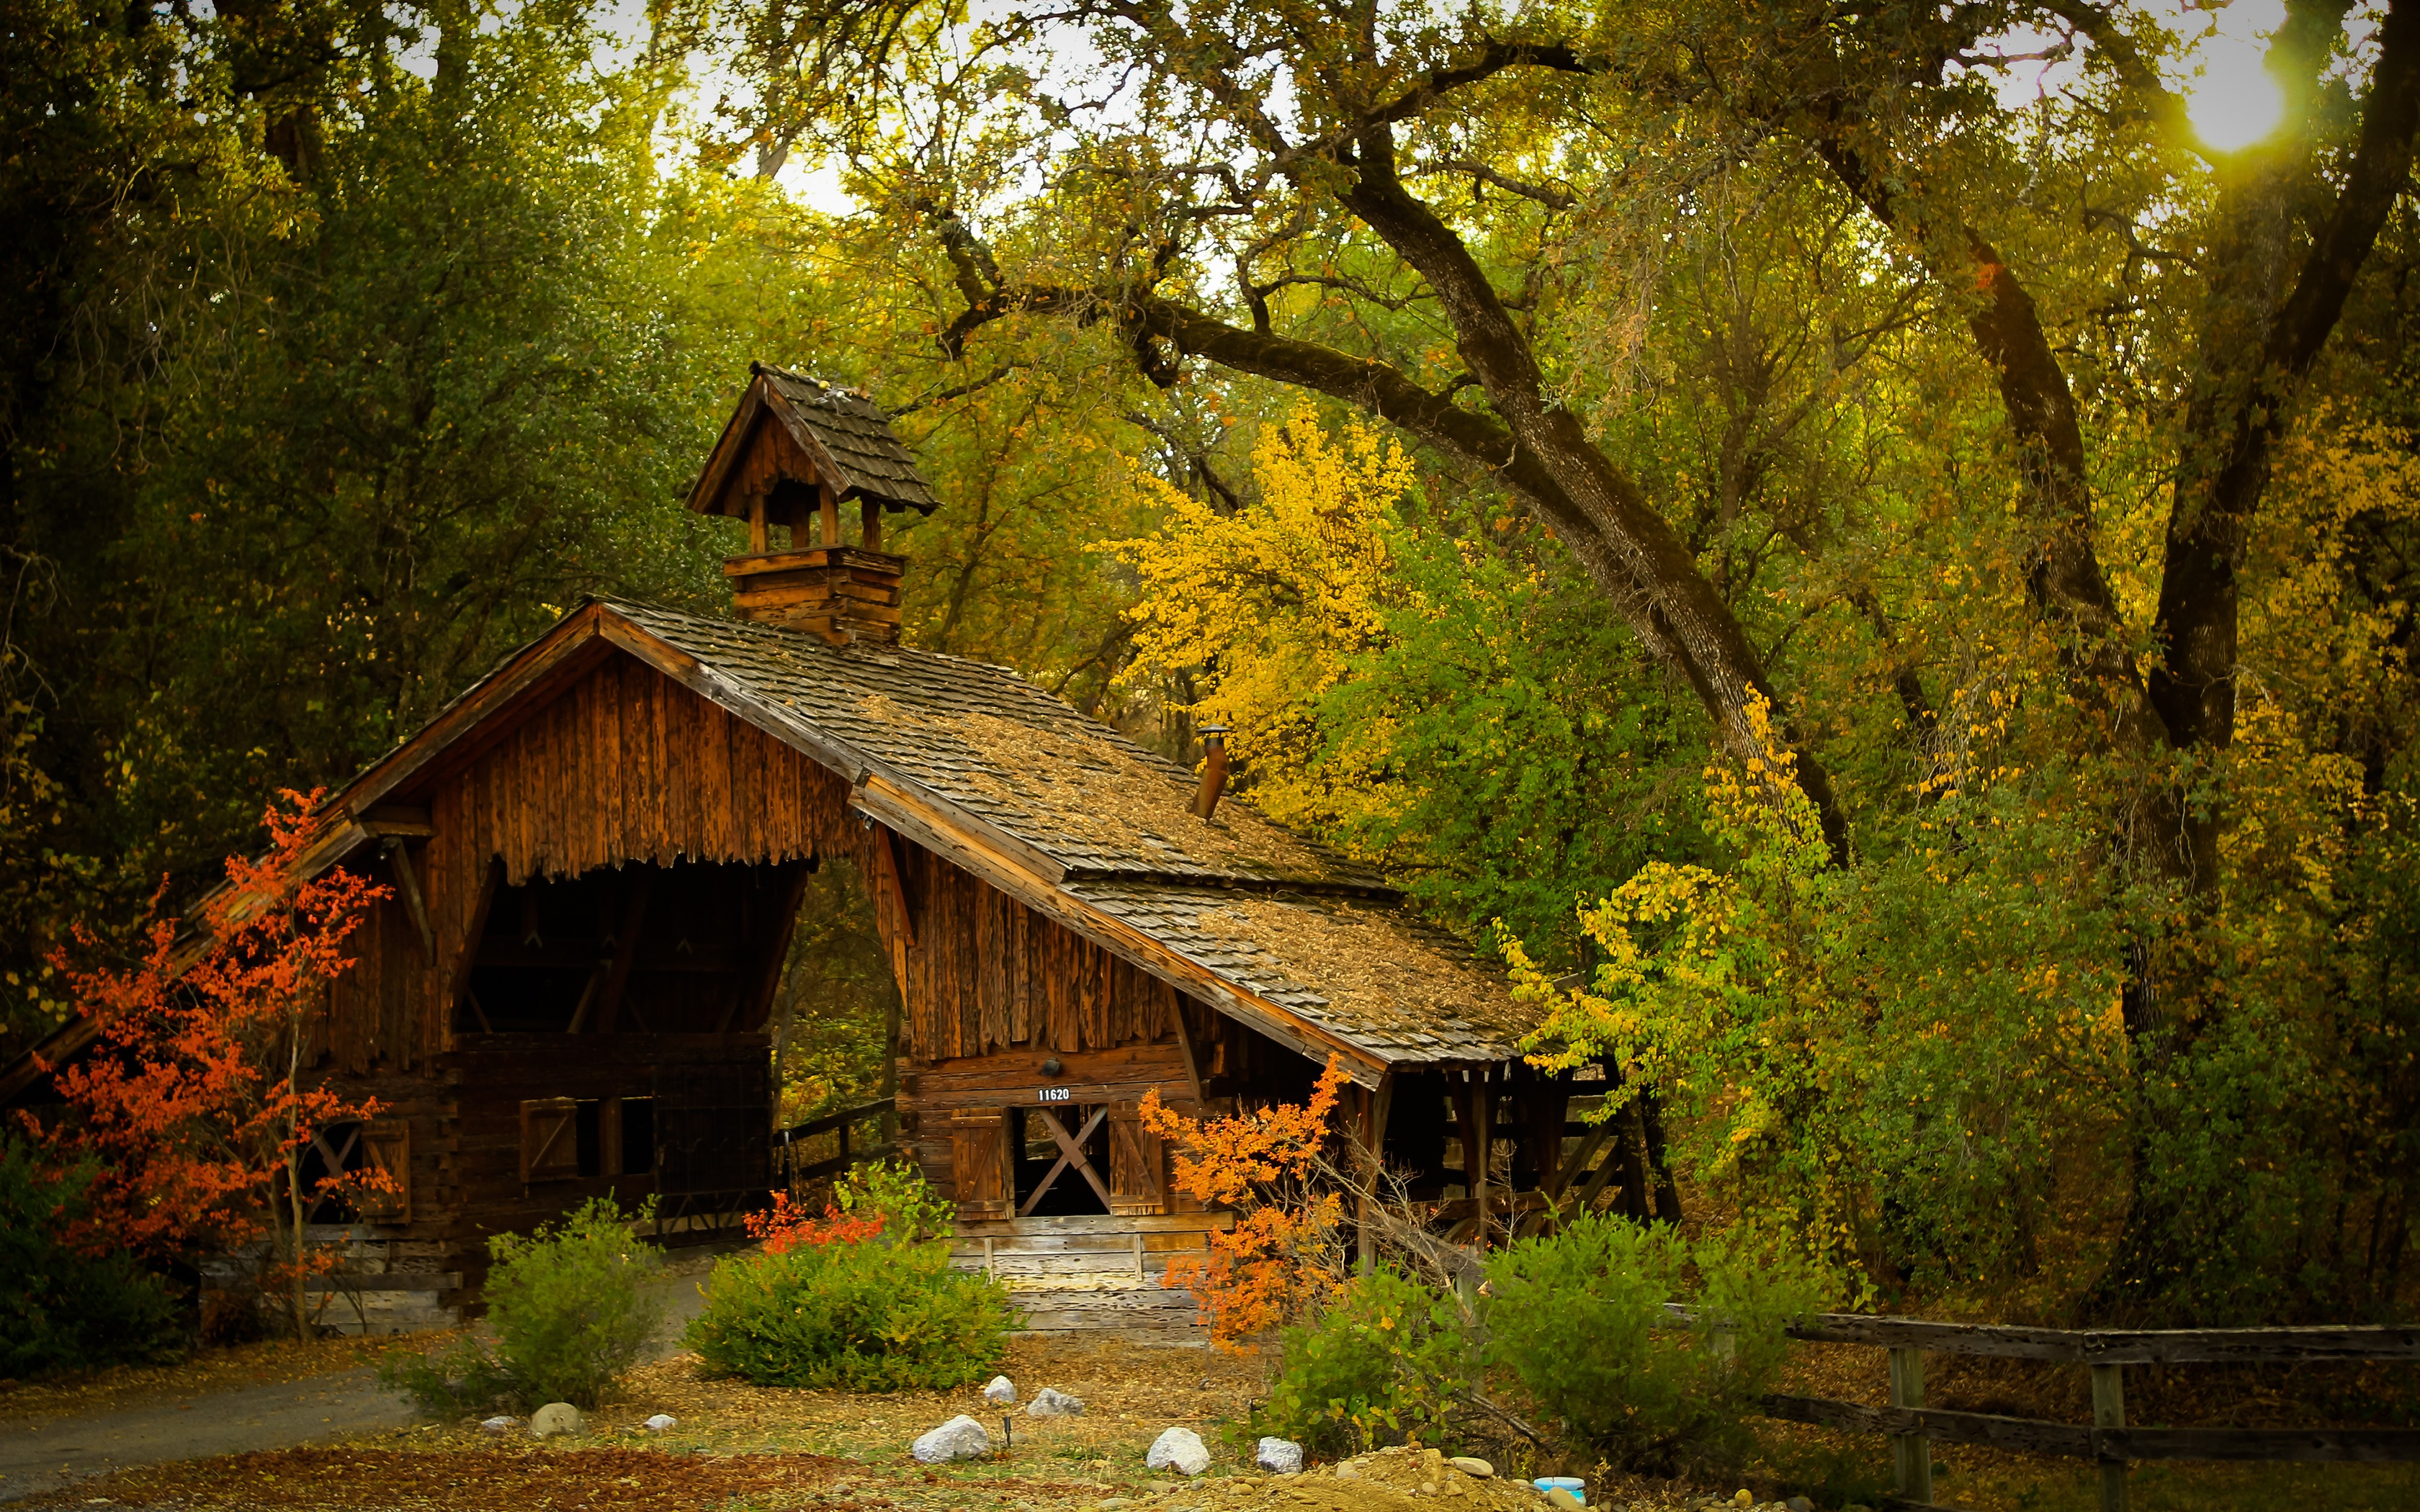 Fall Cabin Wallpaper Nature Photography Landscape Barn Hut Forest Fence